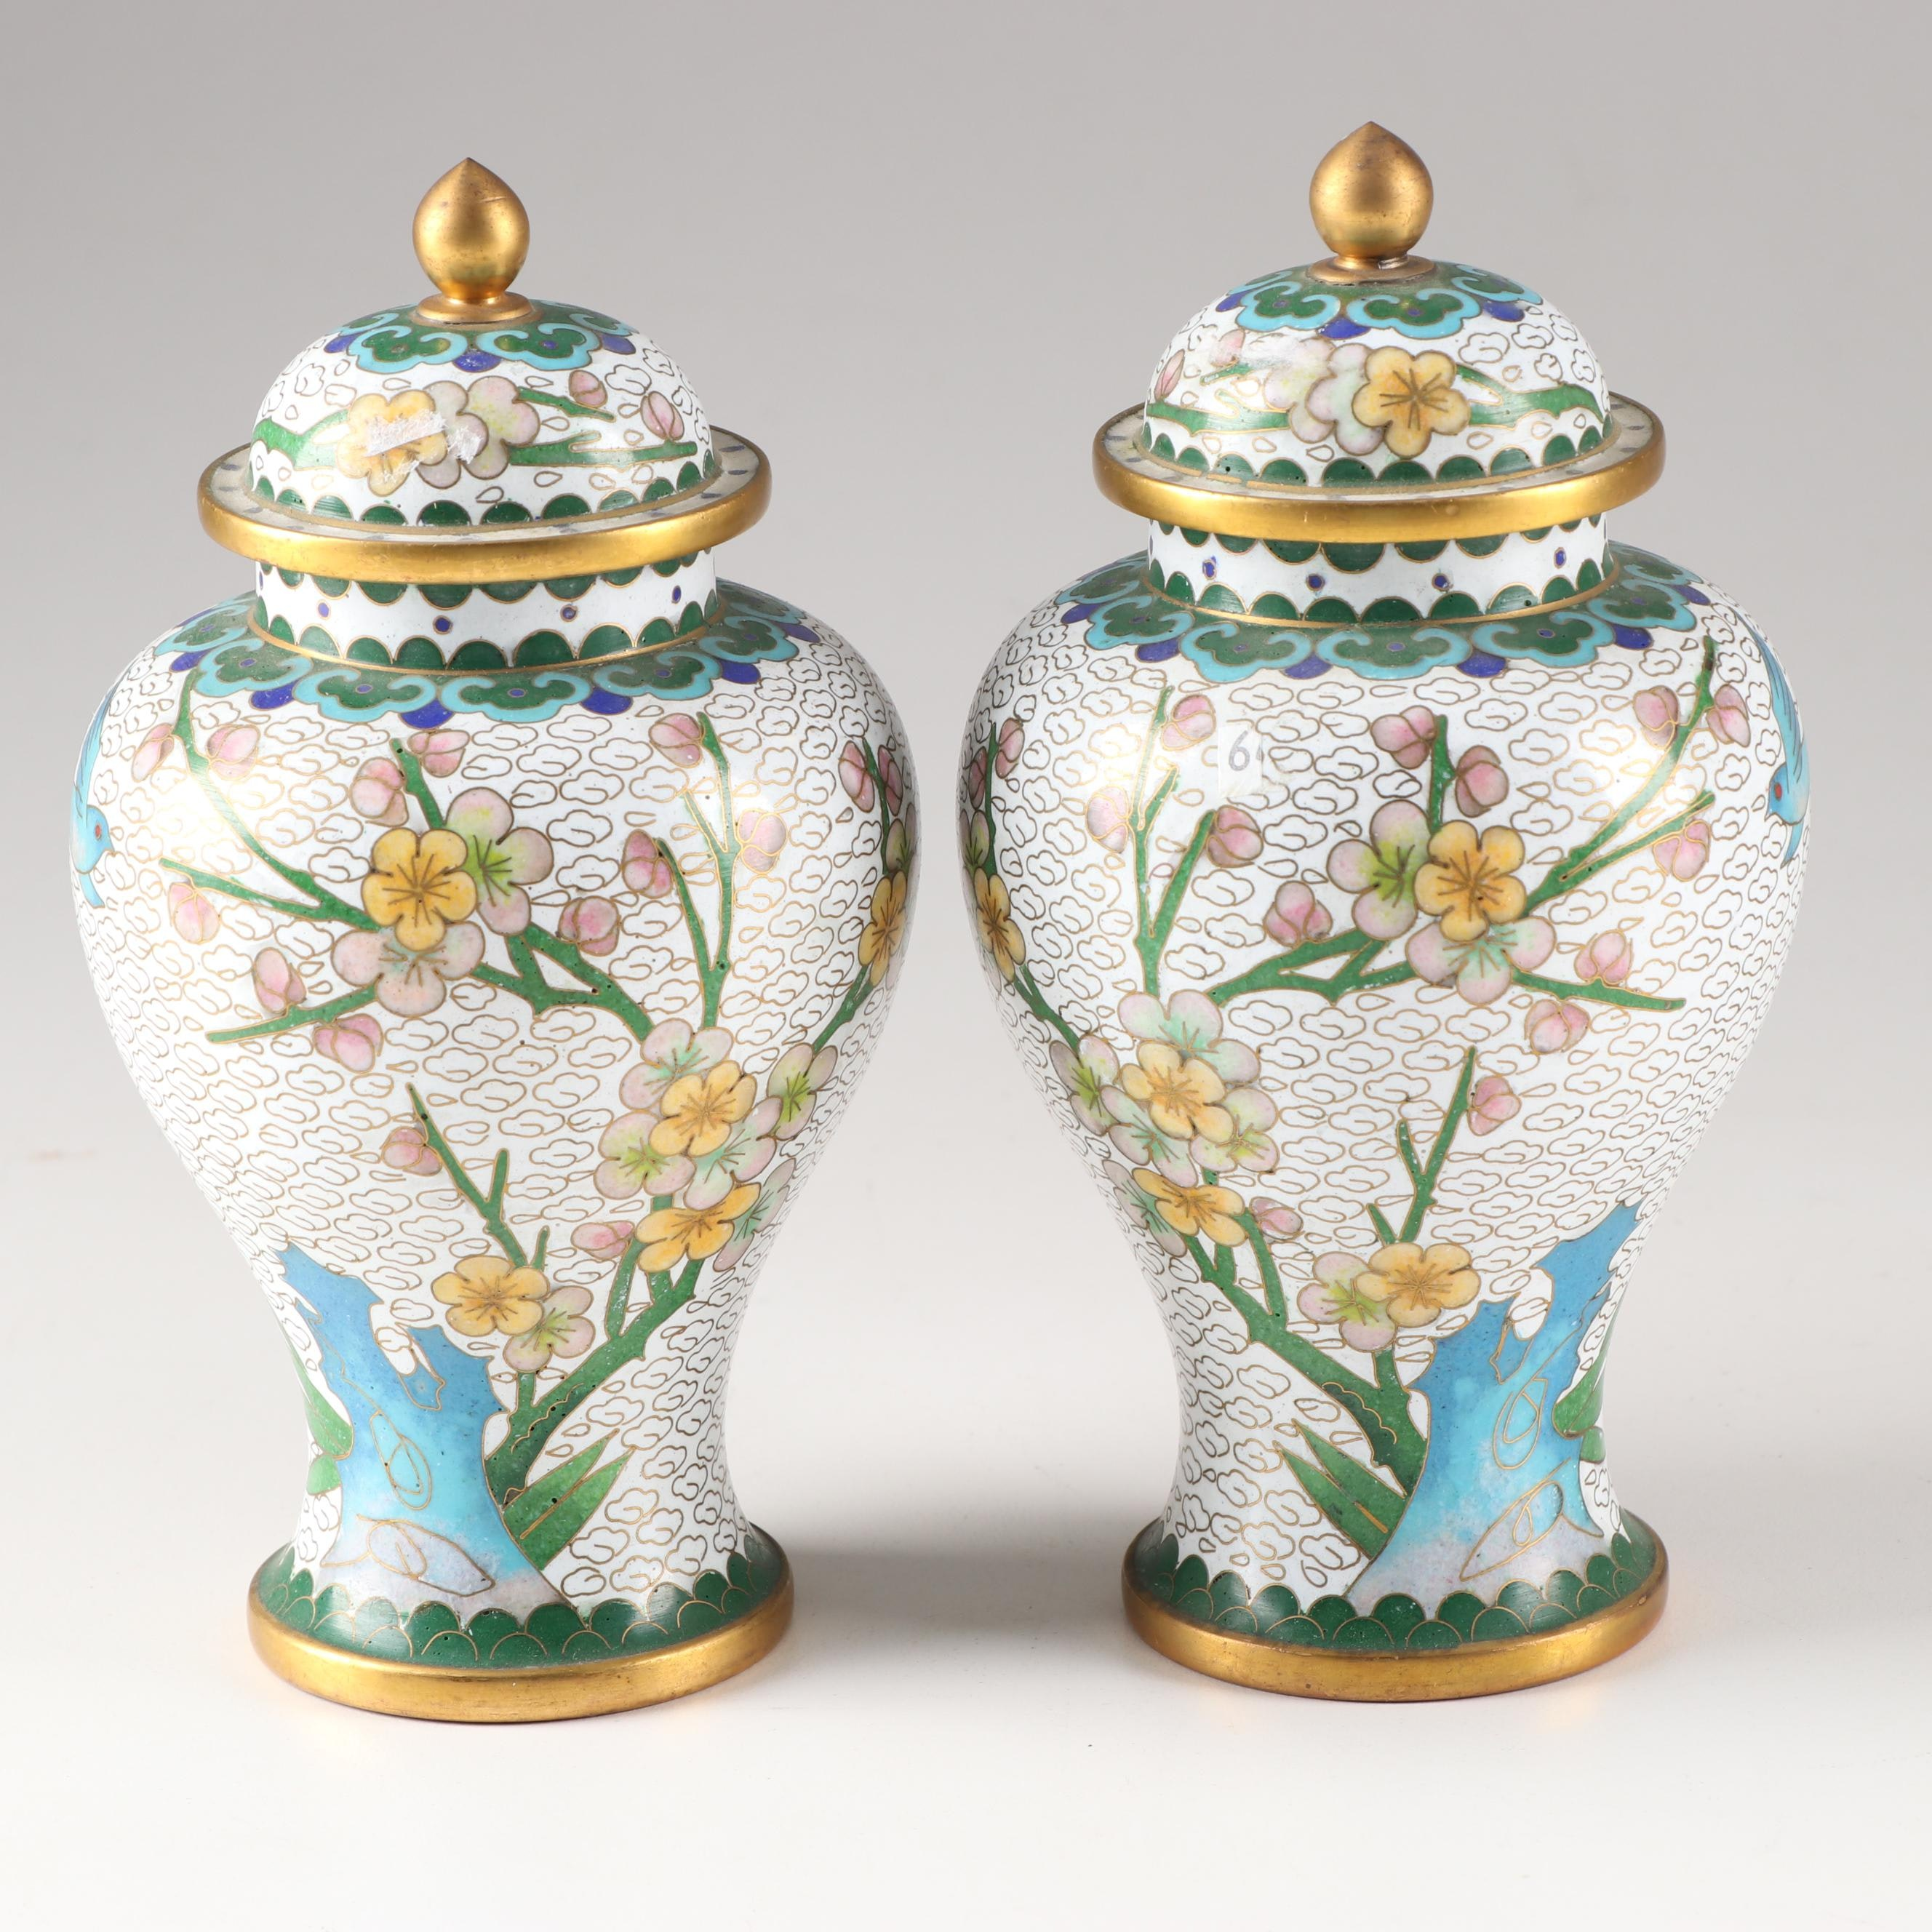 Chinese Cloisonné Lidded Ginger Jars